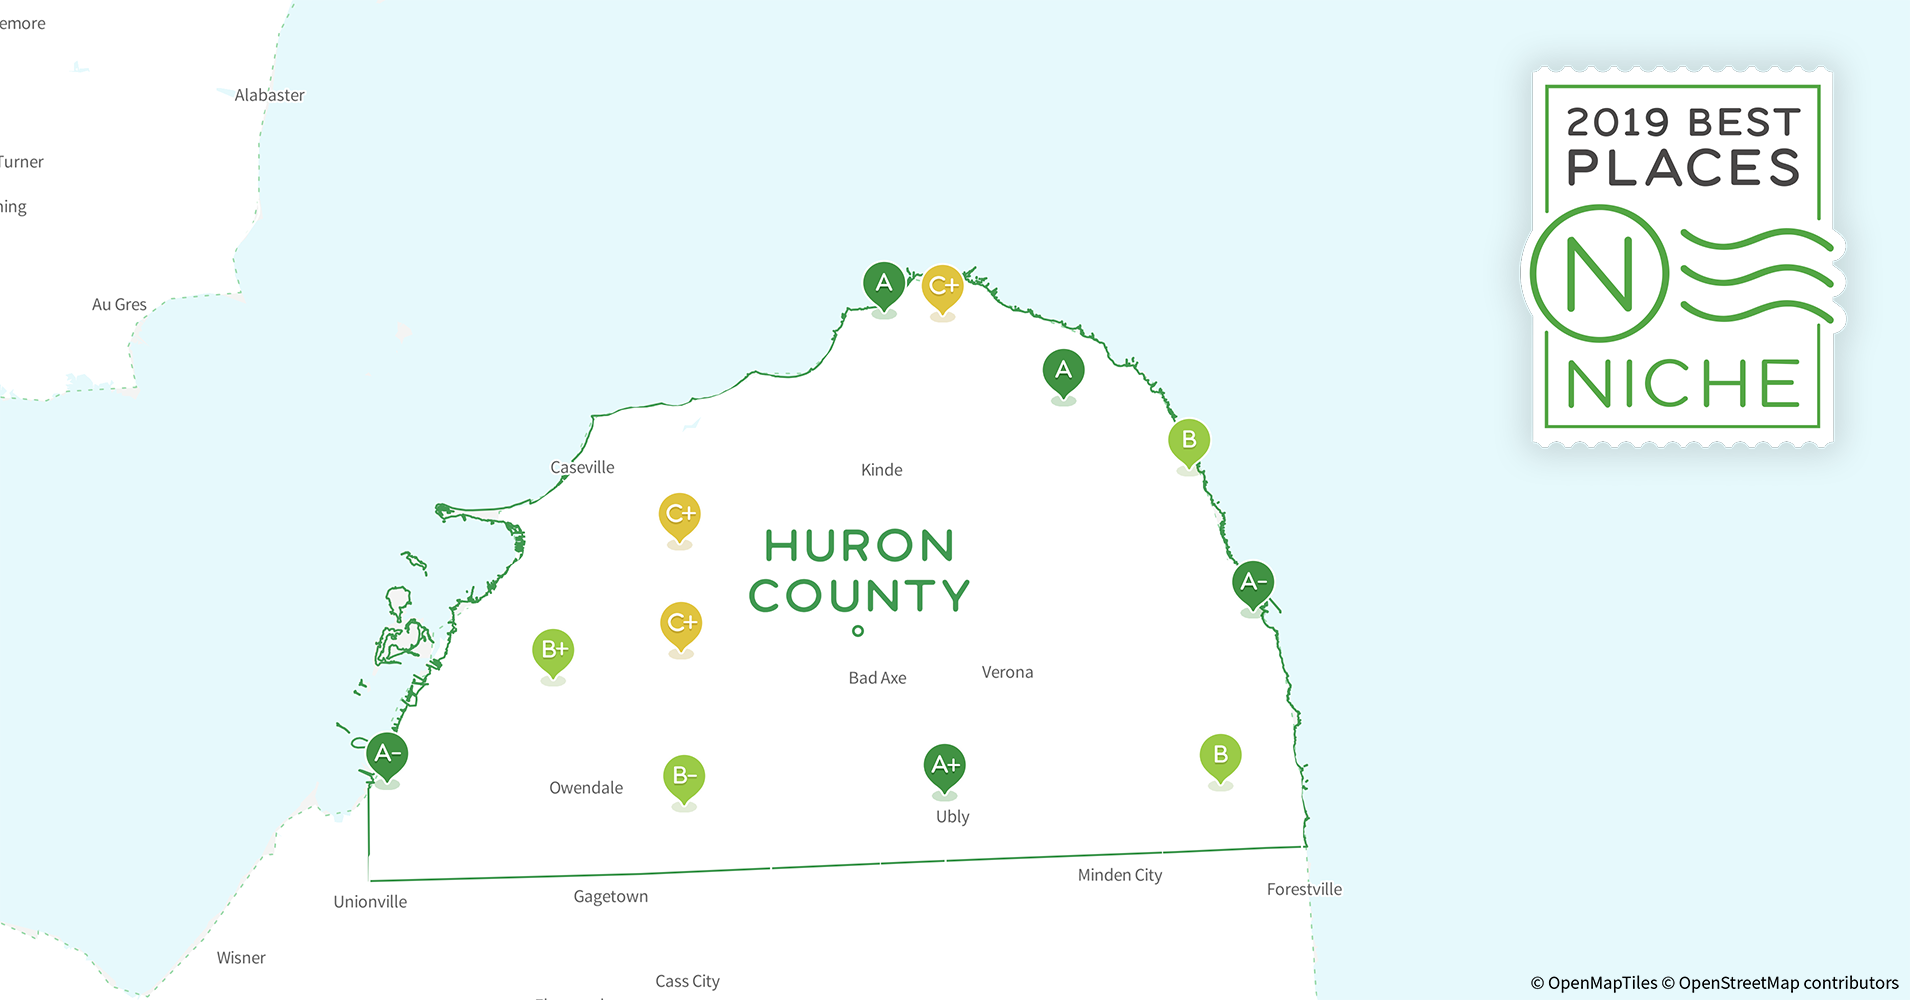 2019 Best Places to Retire in Huron County, MI - Niche Caseville Michigan Map With Street Names Of on